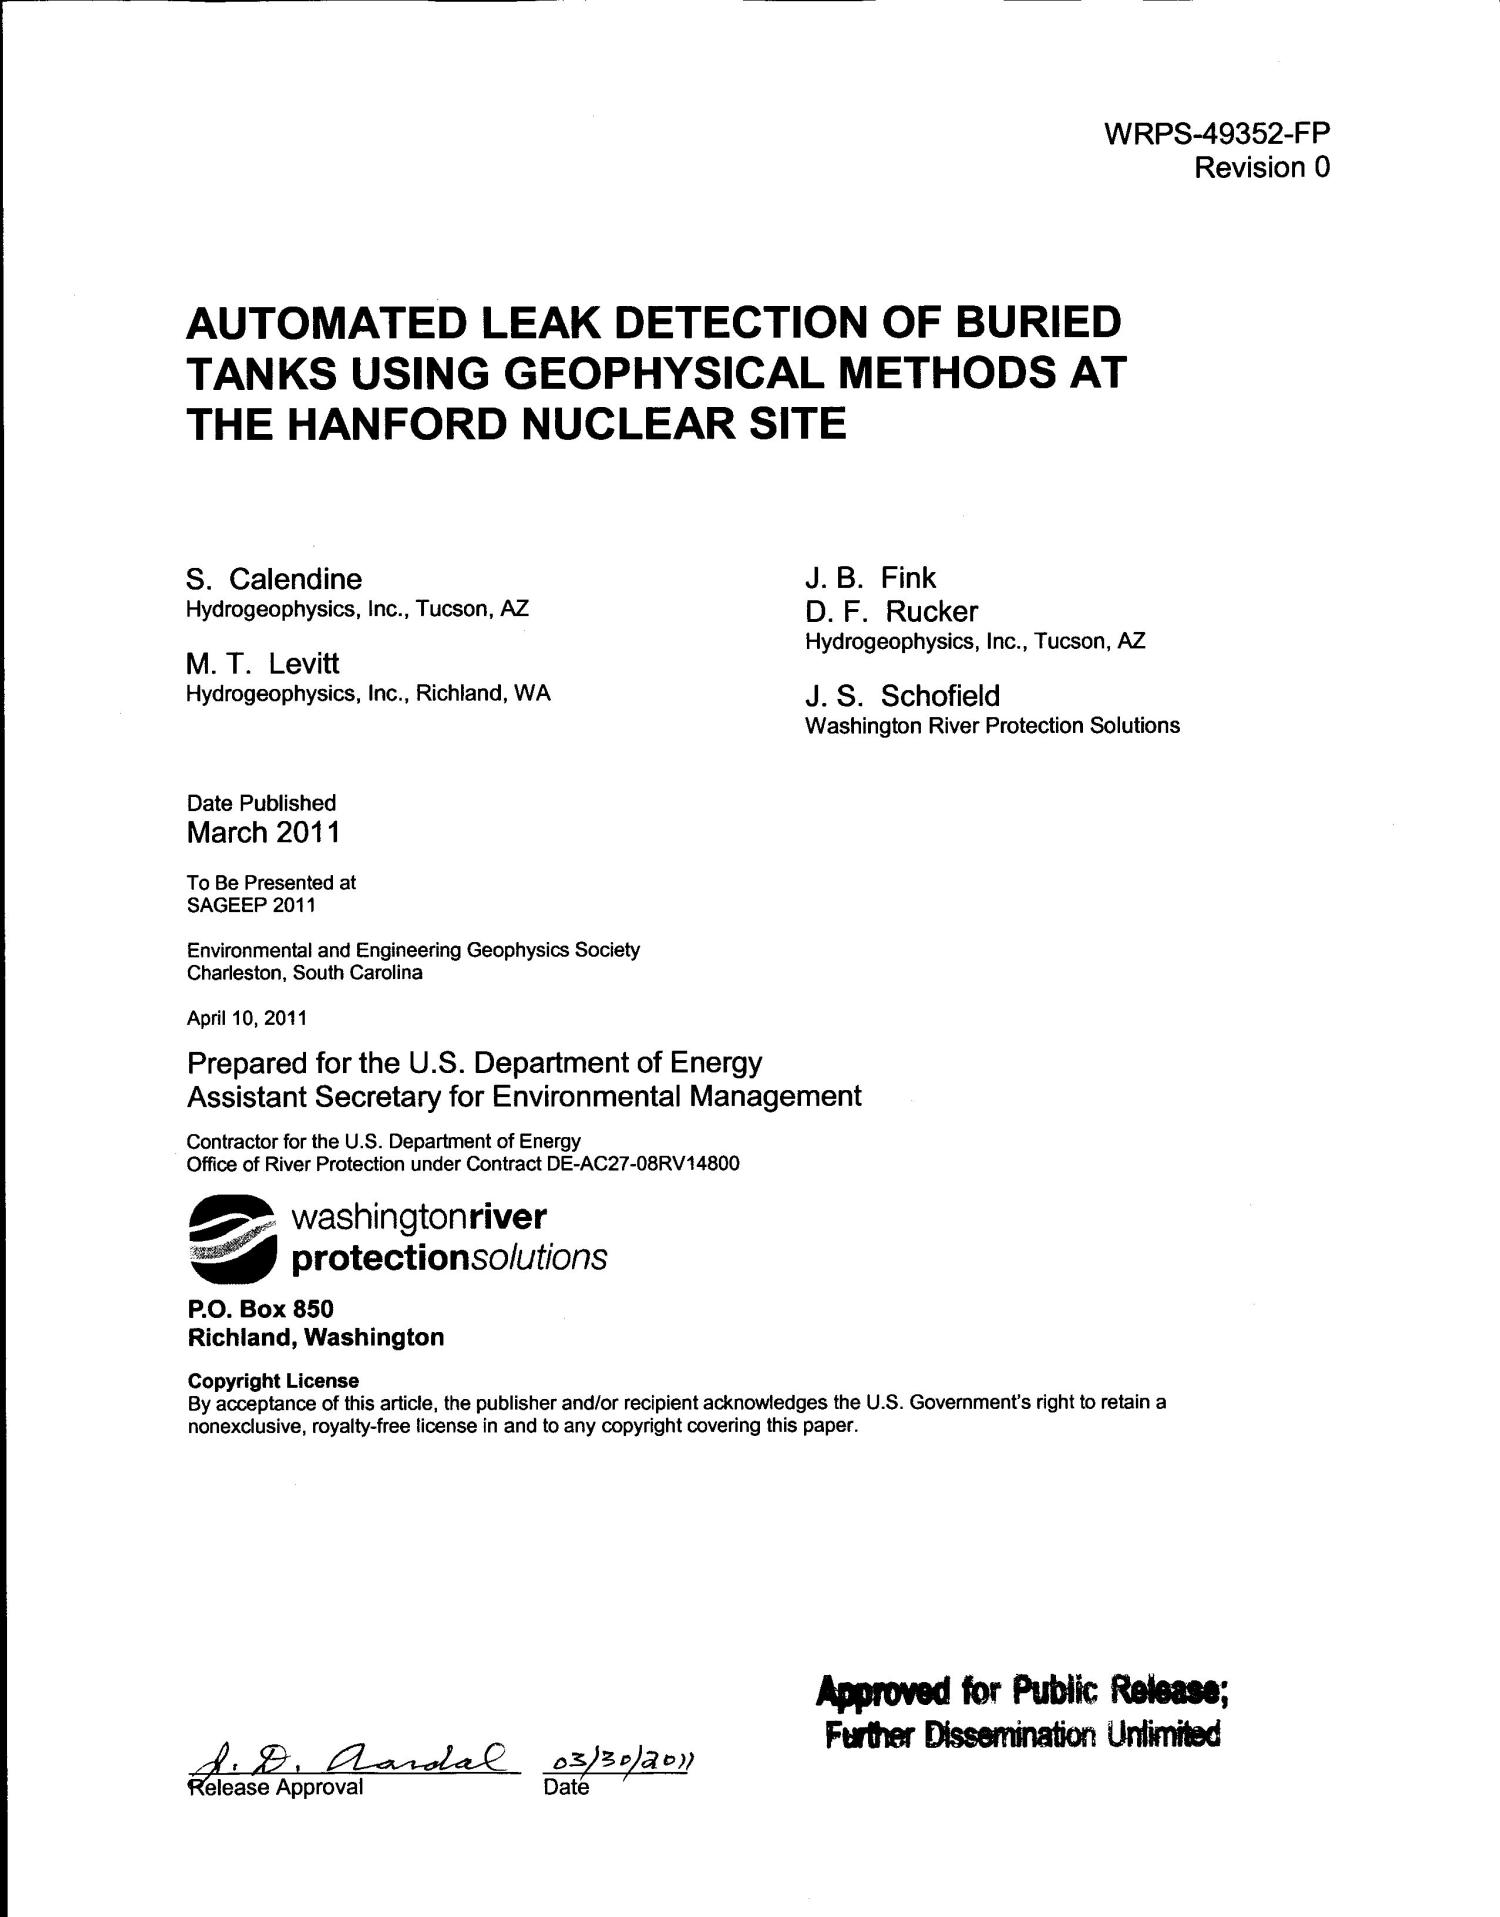 AUTOMATED LEAK DETECTION OF BURIED TANKS USING GEOPHYSICAL METHODS AT THE HANFORD NUCLEAR SITE                                                                                                      [Sequence #]: 2 of 15